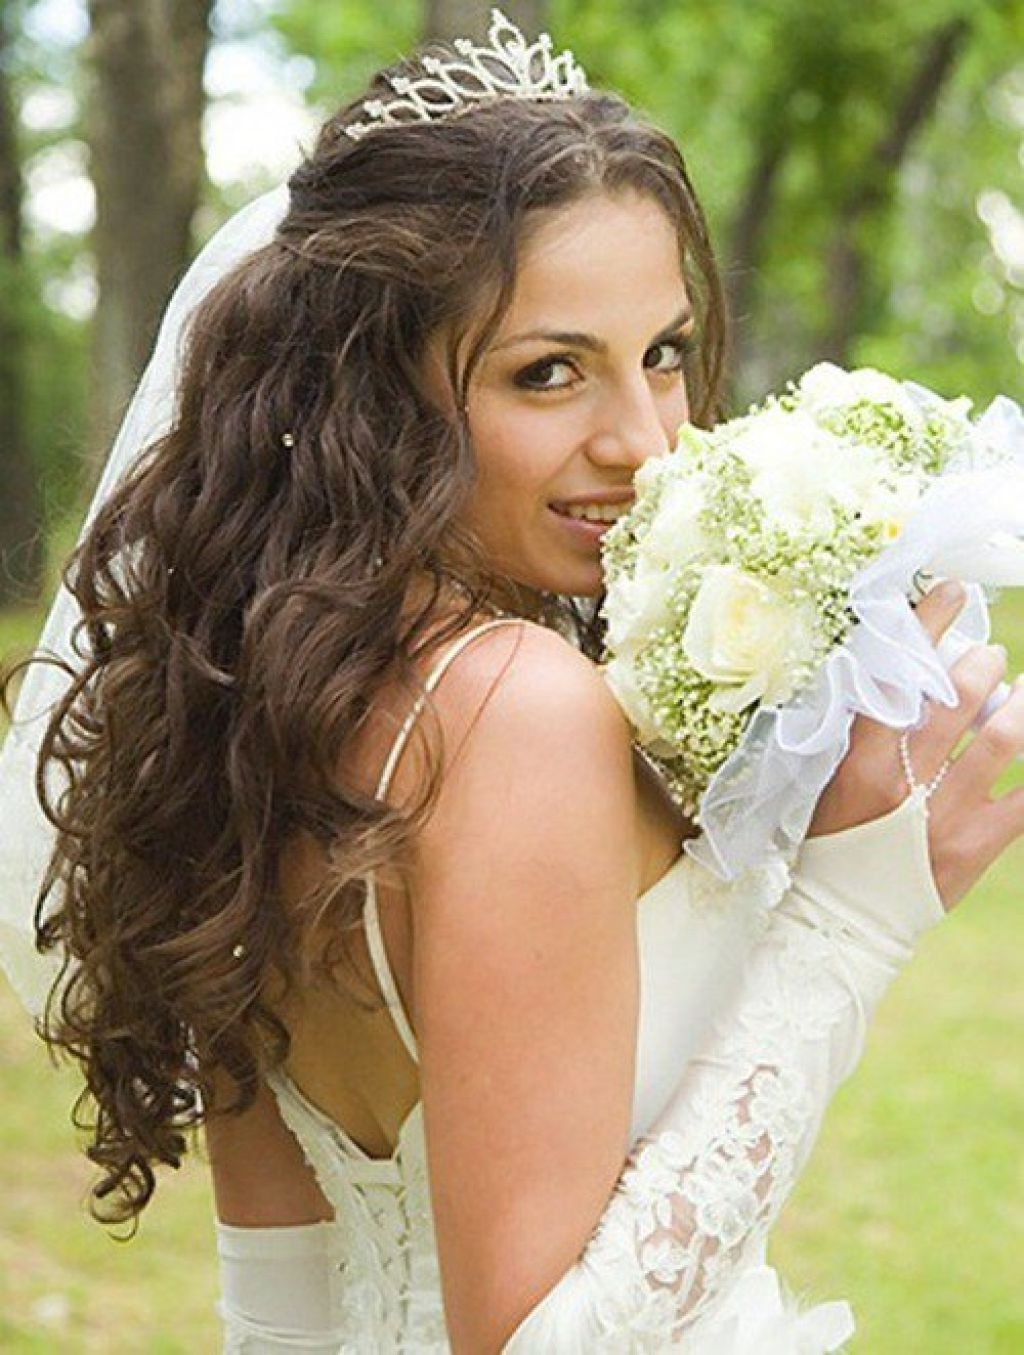 2018 Wedding Hairstyles For Long Straight Hair With Veil Intended For Wedding Hairstyles For Long Hair With Headband Popular 50th (View 10 of 15)